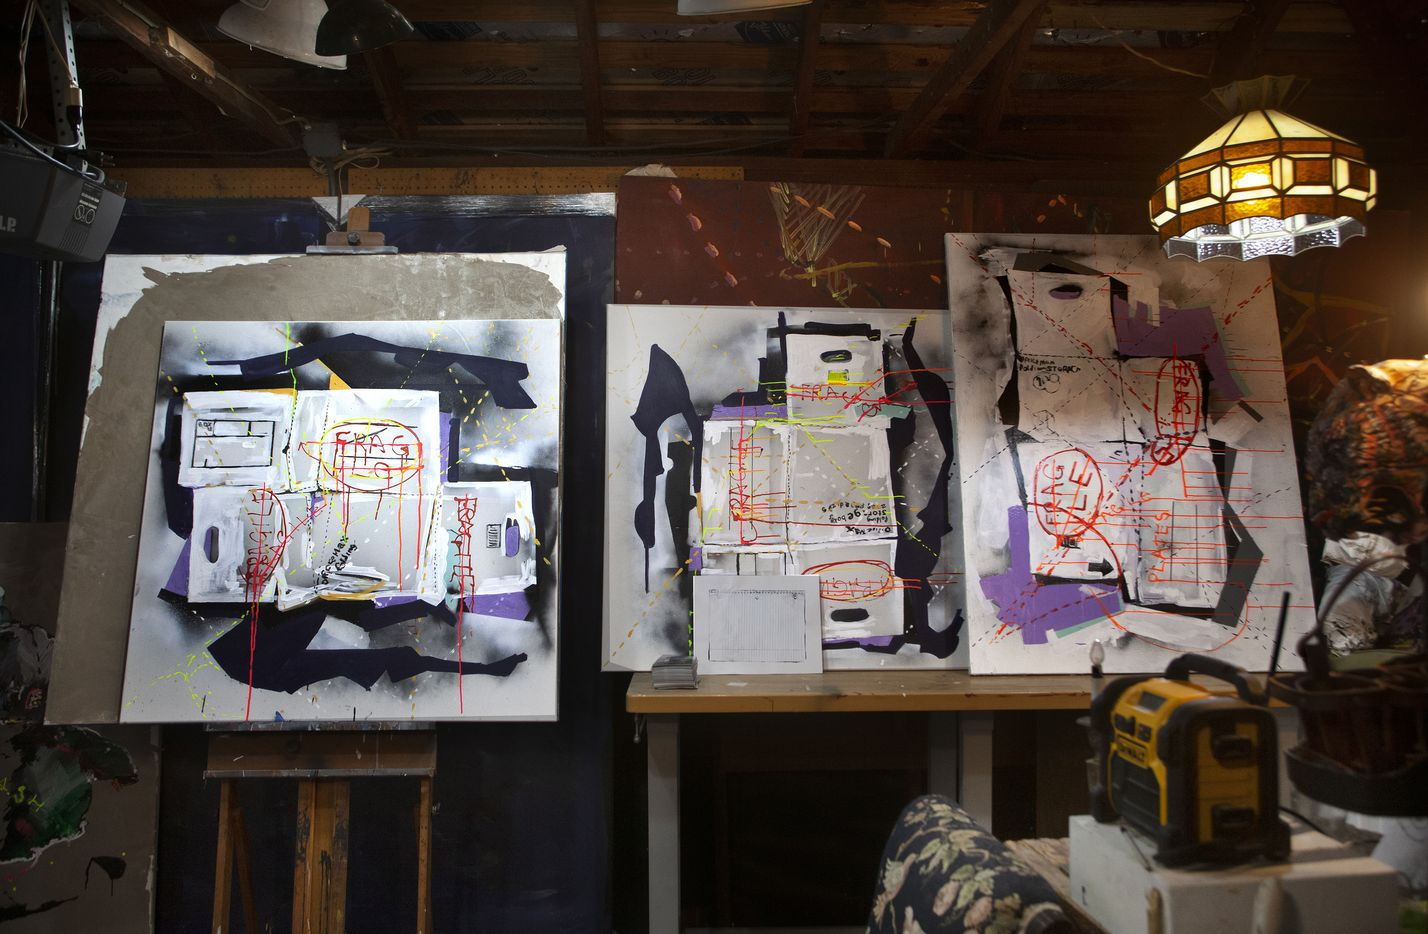 Nic Mathis' works are inspired by his life as a skater, electrician, husband and father. Here's a detail from his studio.